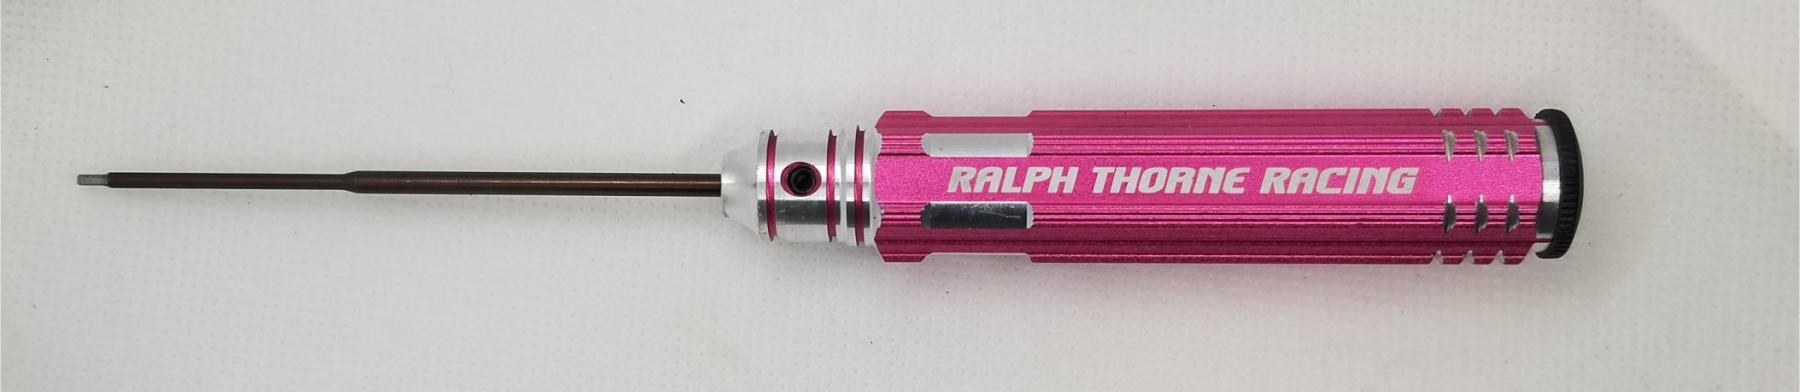 Wrench Pink.jpg